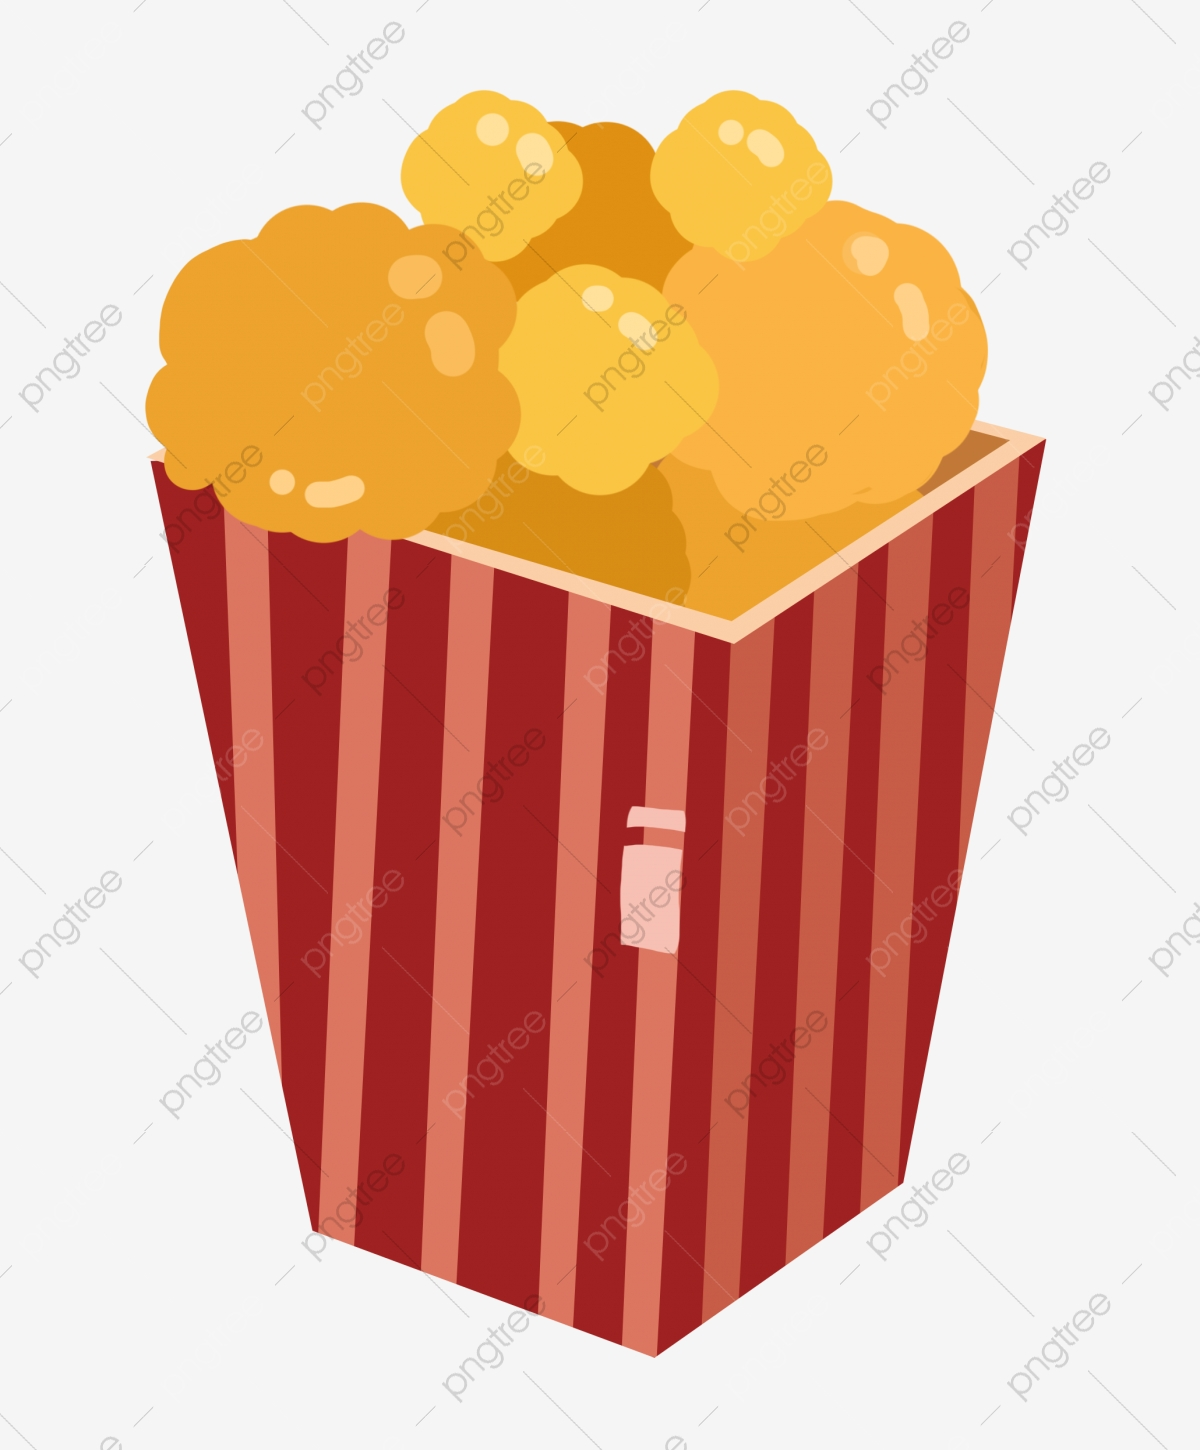 A Bucket Of Popcorn Snack Illustration Popcorn Snacks Corn Png Transparent Clipart Image And Psd File For Free Download